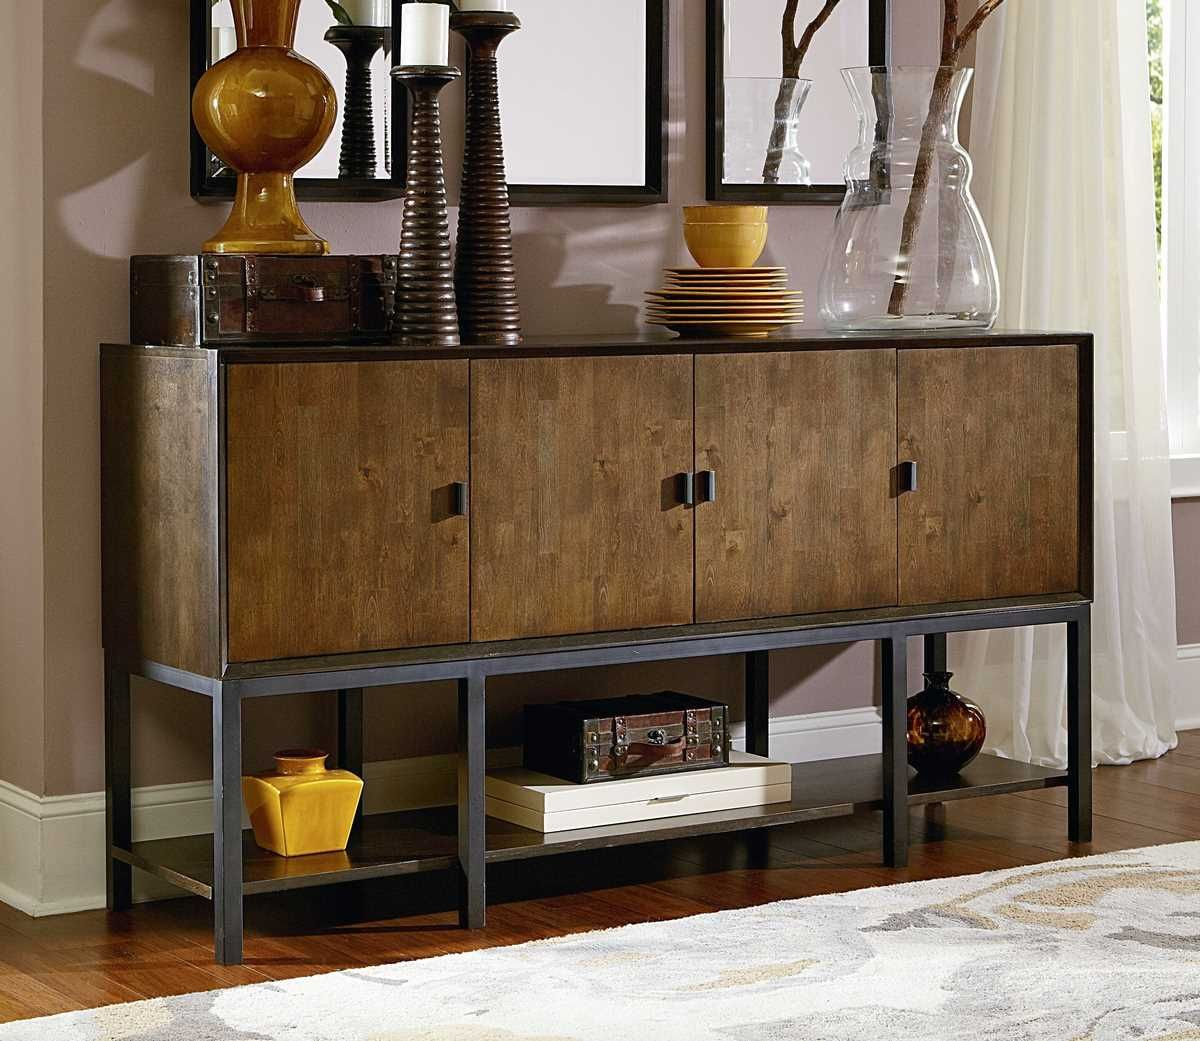 Kateri Contemporary Sideboard /w 4 Wood Doors is a part of Kateri Collection by Legacy Classic Furniture #Sideboard #LegacyClassicFurniture